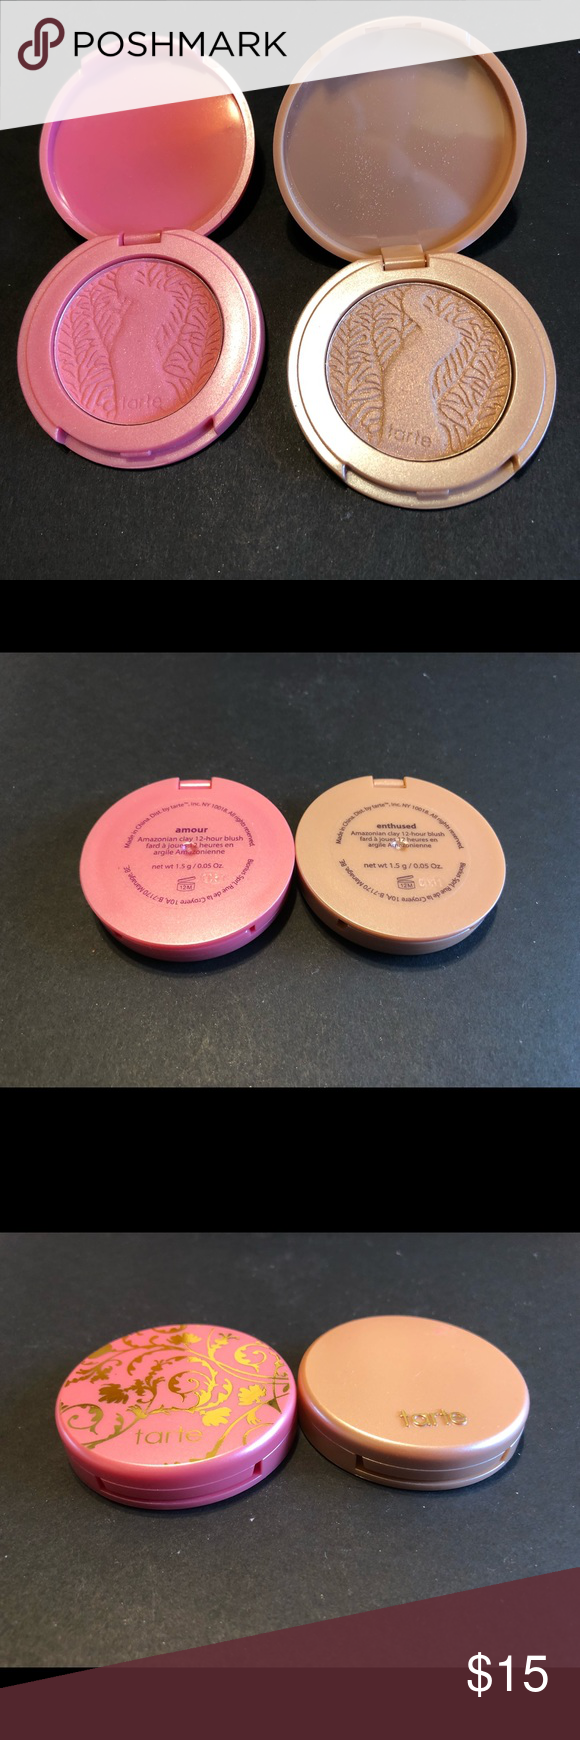 2 deluxe sized tarte blushes Used once. 100% Authentic. Sephora Makeup Blush